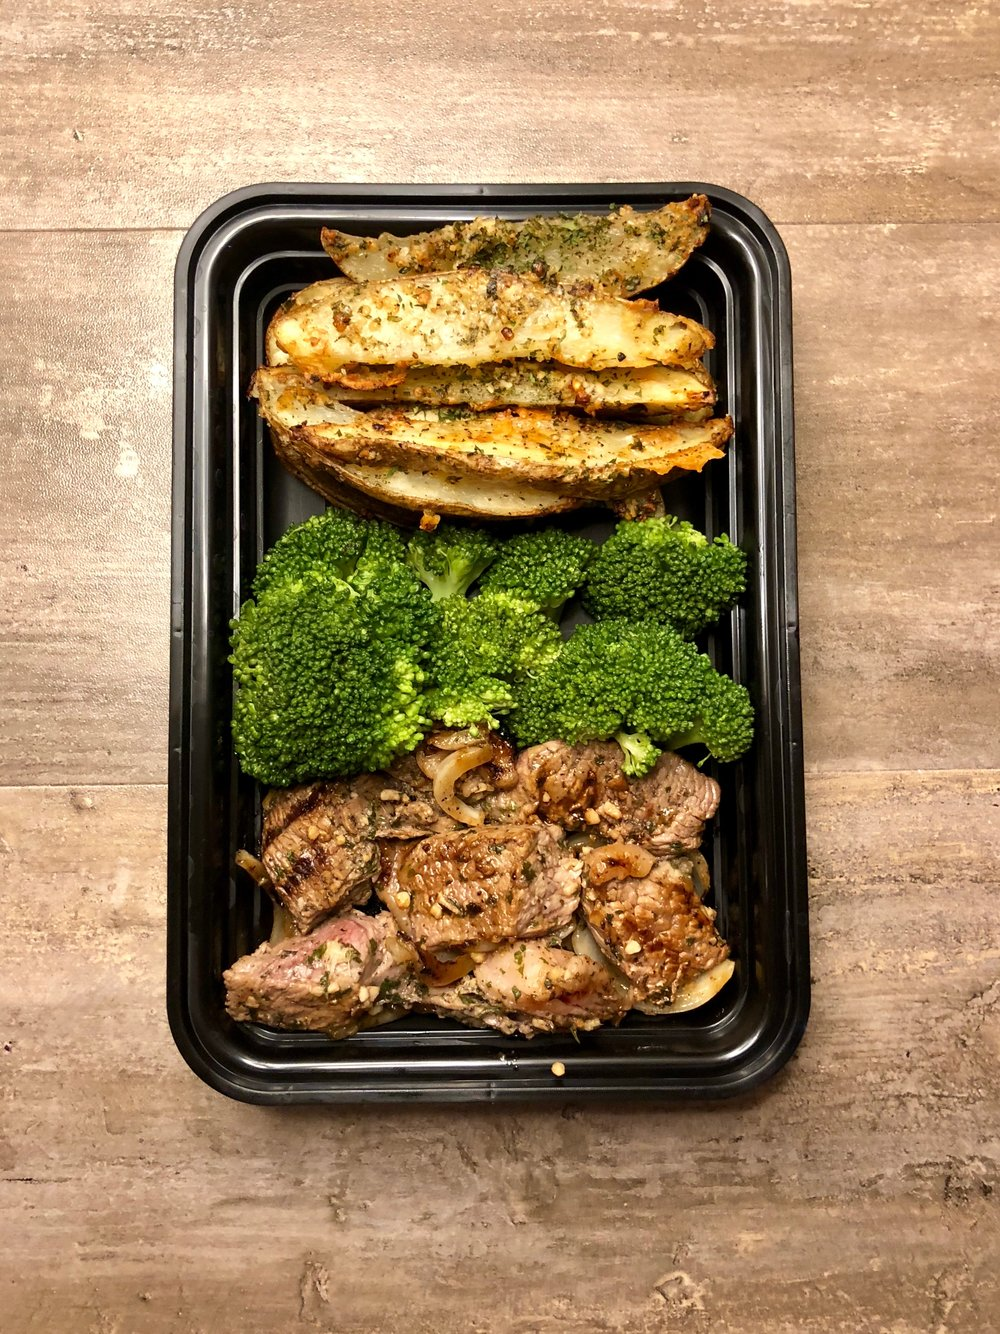 Grilled Steak with Garlic Parmesan Potato Wedges Meal Prep